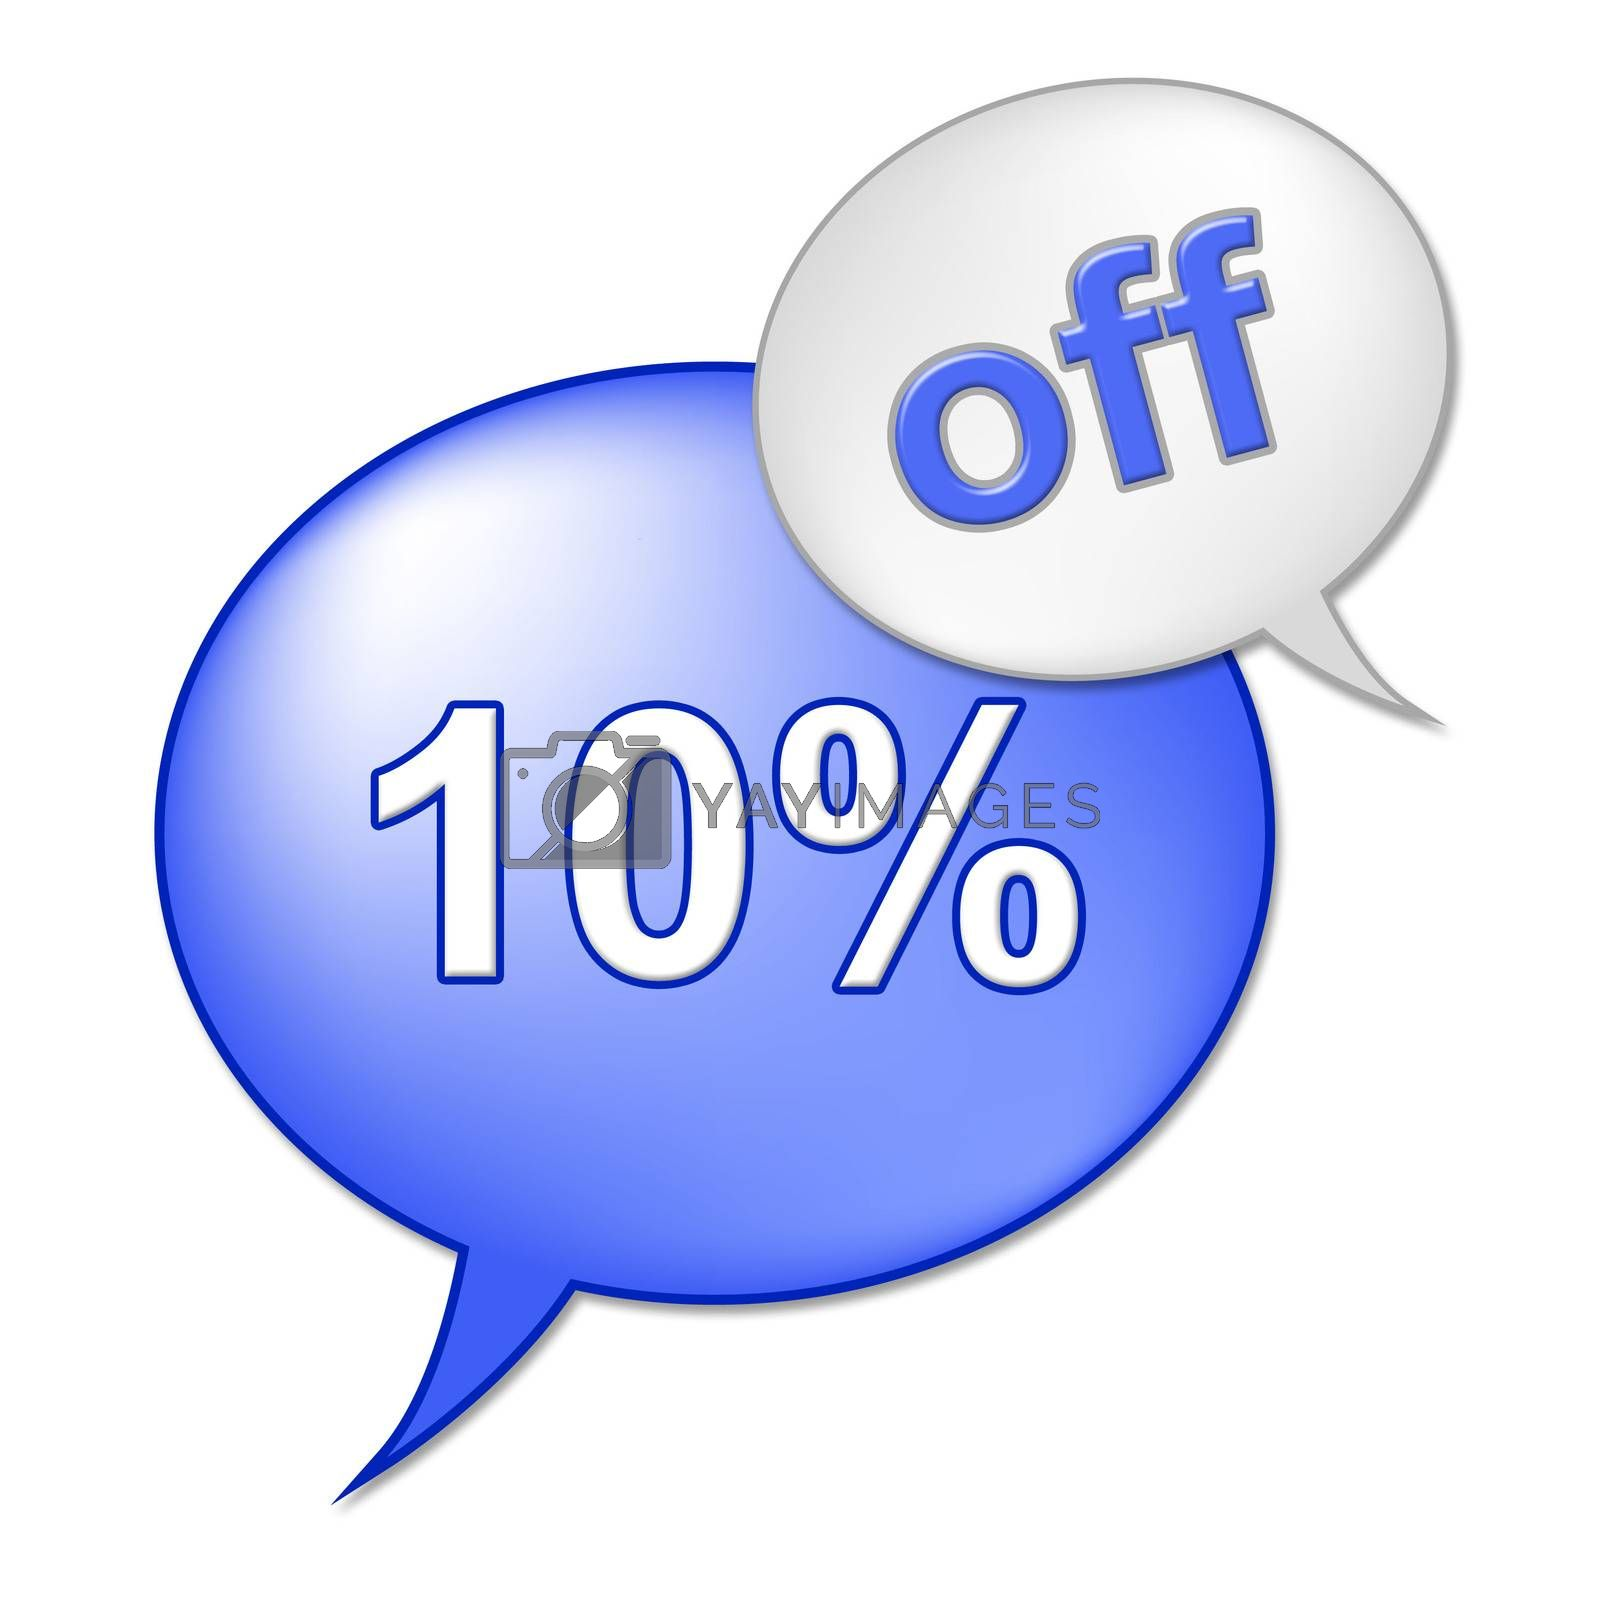 Ten Percent Off Means Closeout Reduction And Promotional by stuartmiles